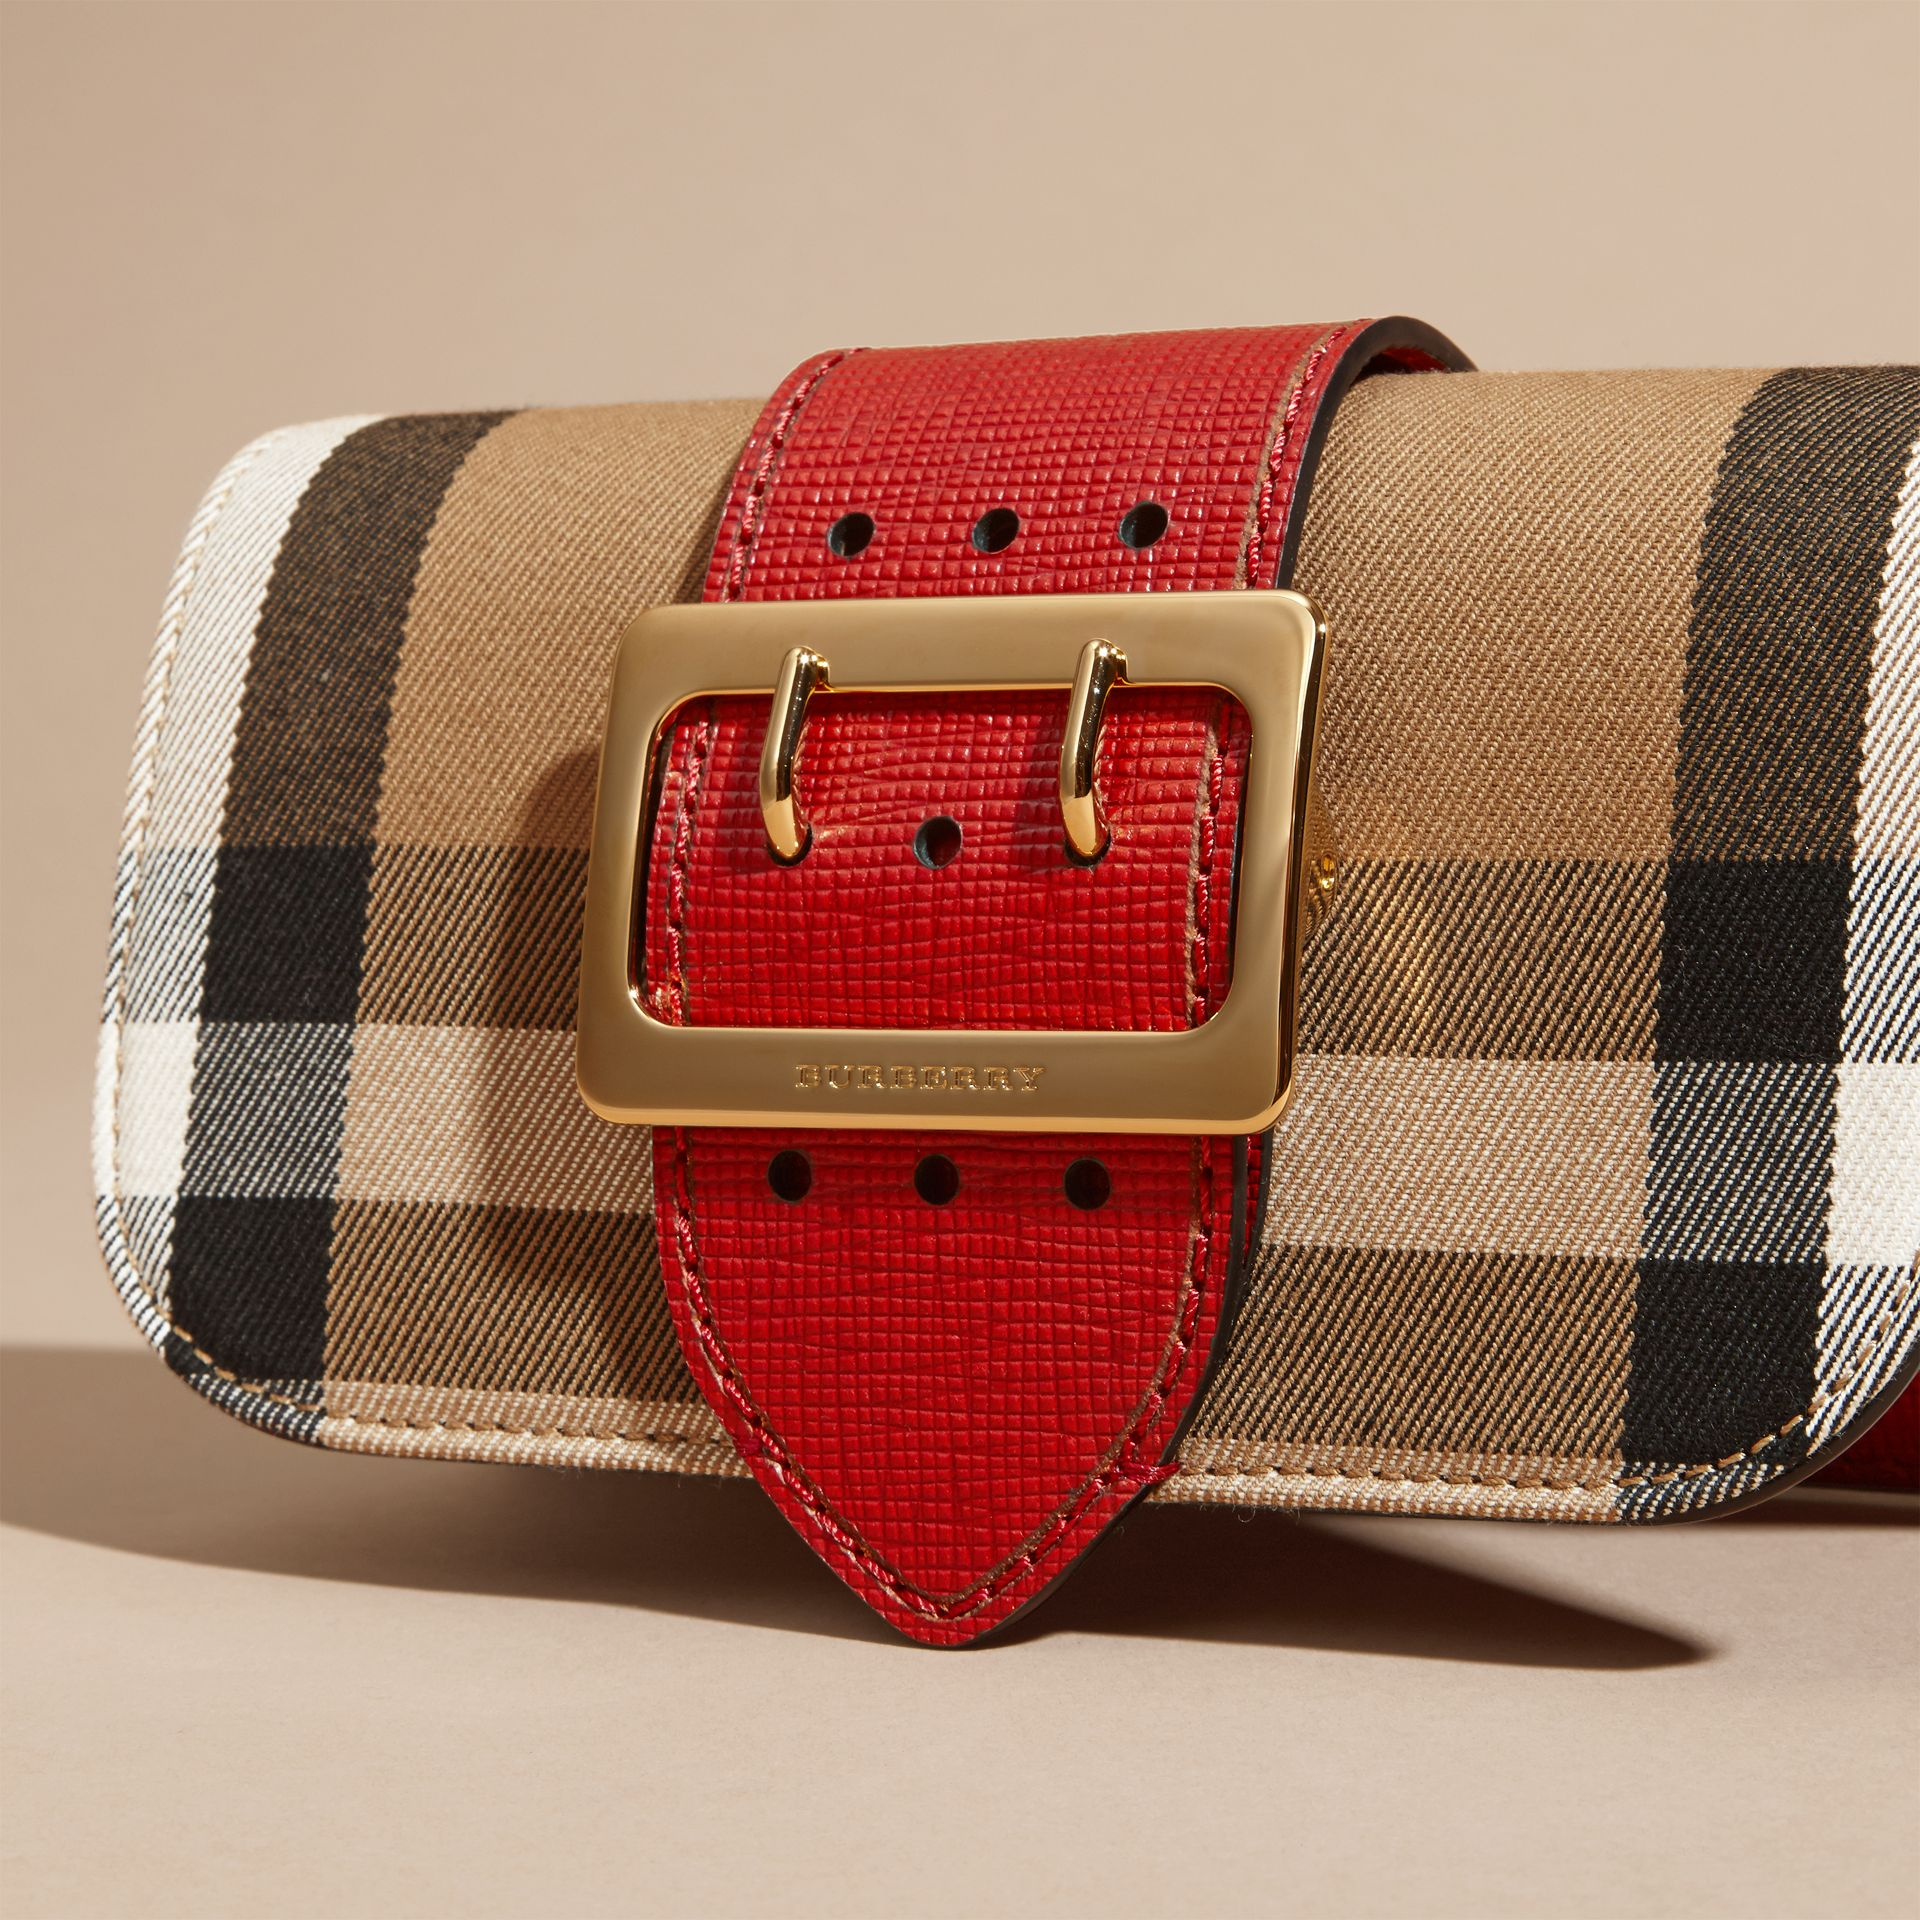 The Small Buckle Bag in House Check and Leather in Military Red/military Red - Women | Burberry United States - gallery image 1